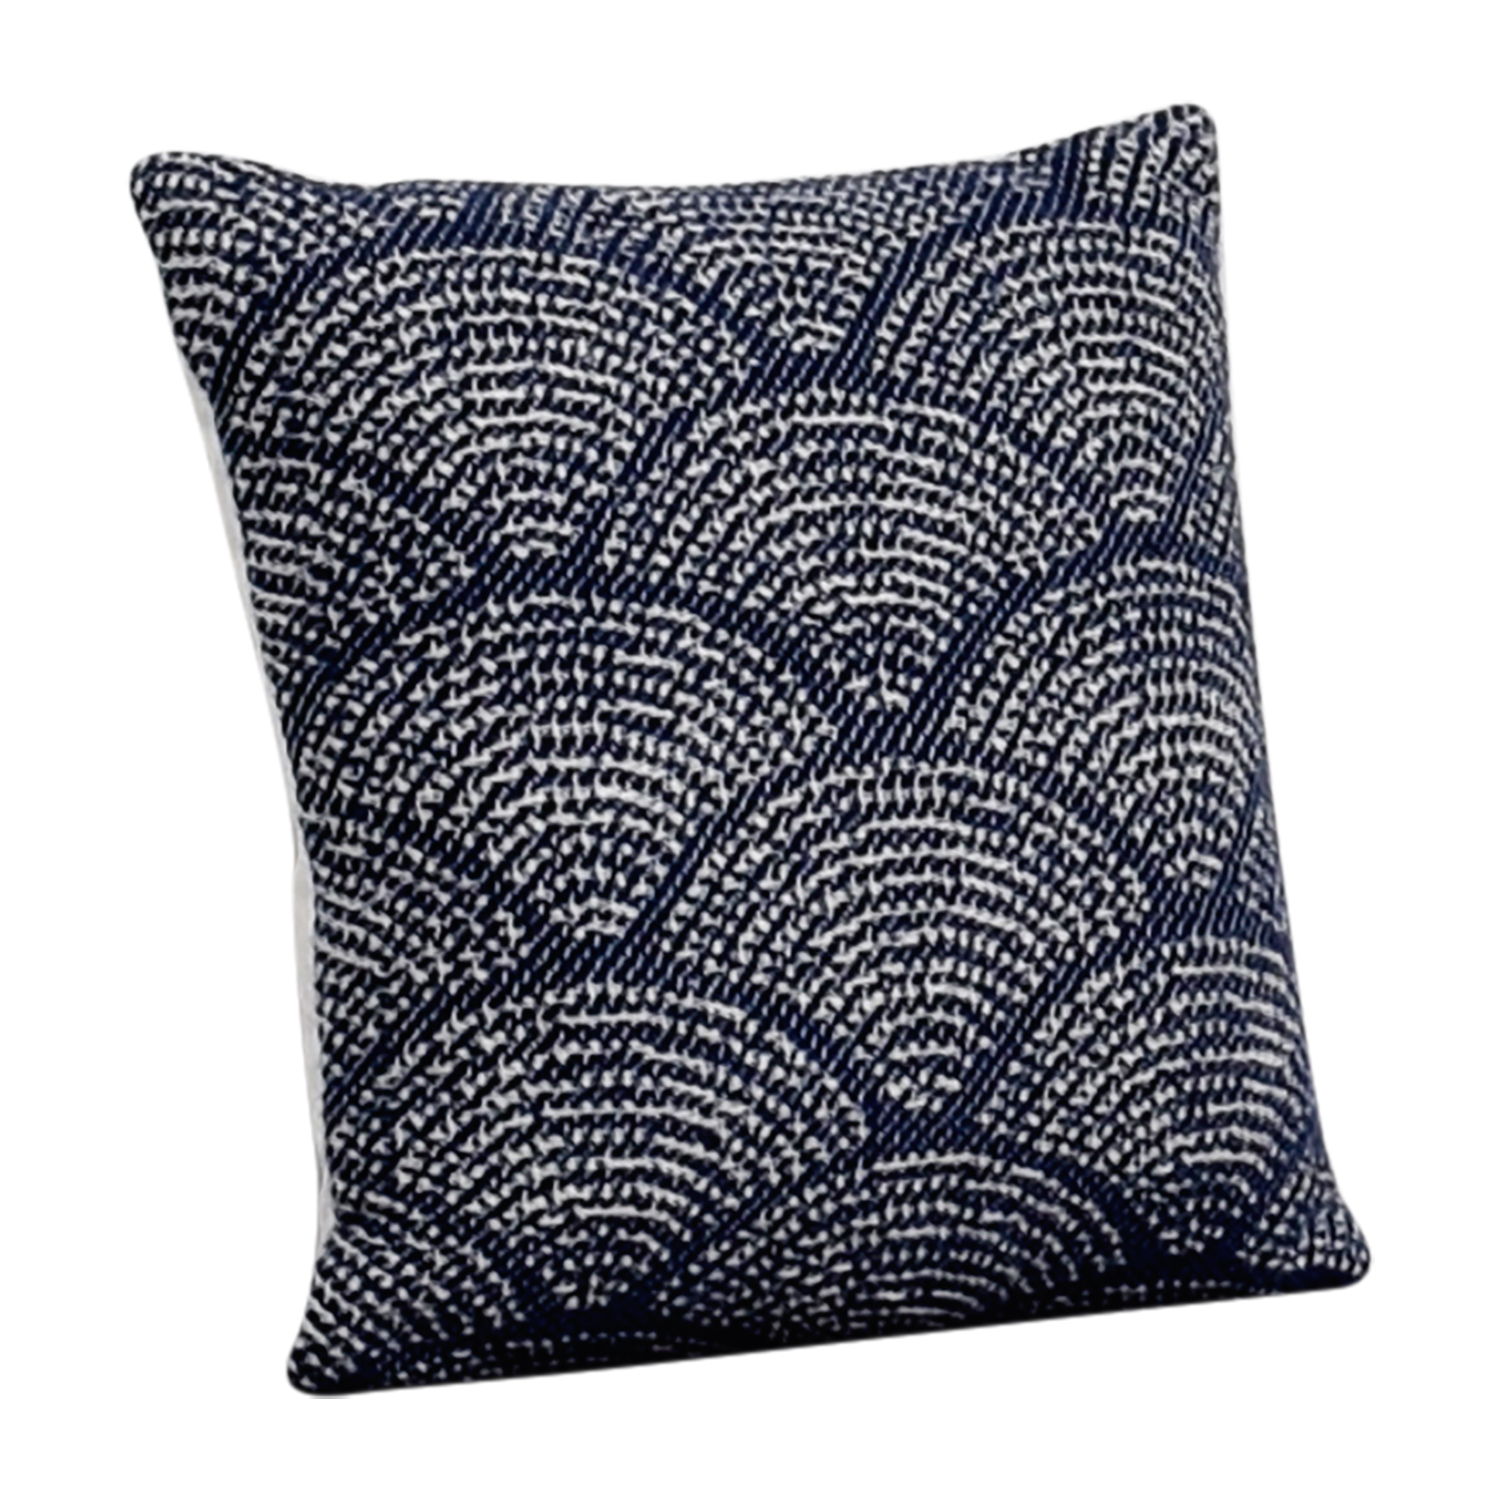 shop Obeetee Obeetee Navy and White Scalloped Toss Pillow online